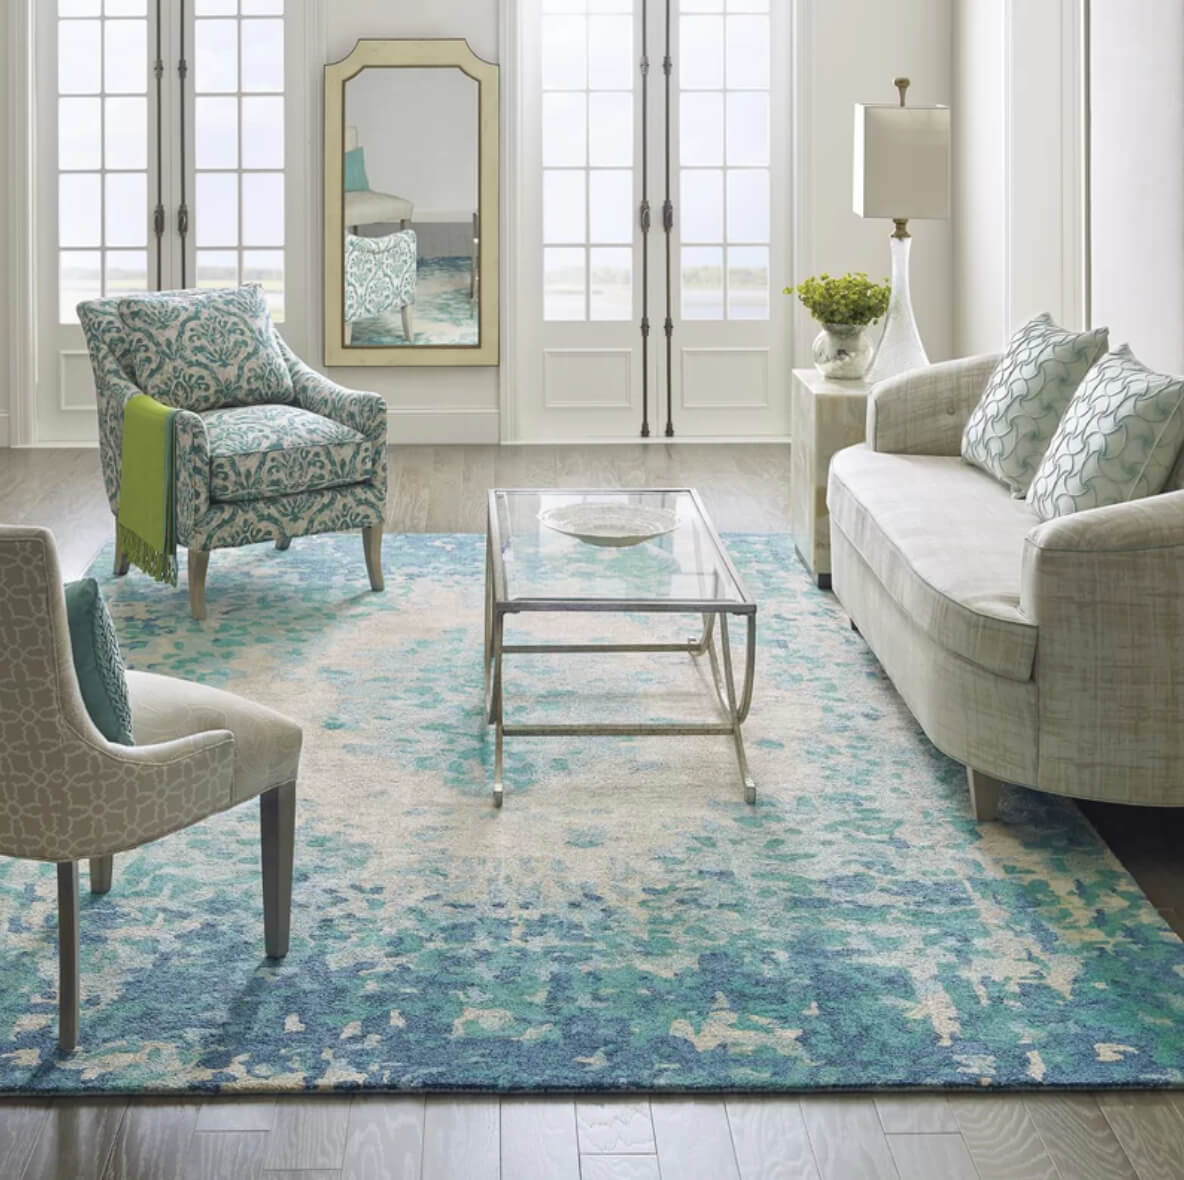 rugs in living room how to design curtains for 12 rug ideas that will change everything the looking glass adds romance a with an impressionistic floral pattern image perigold